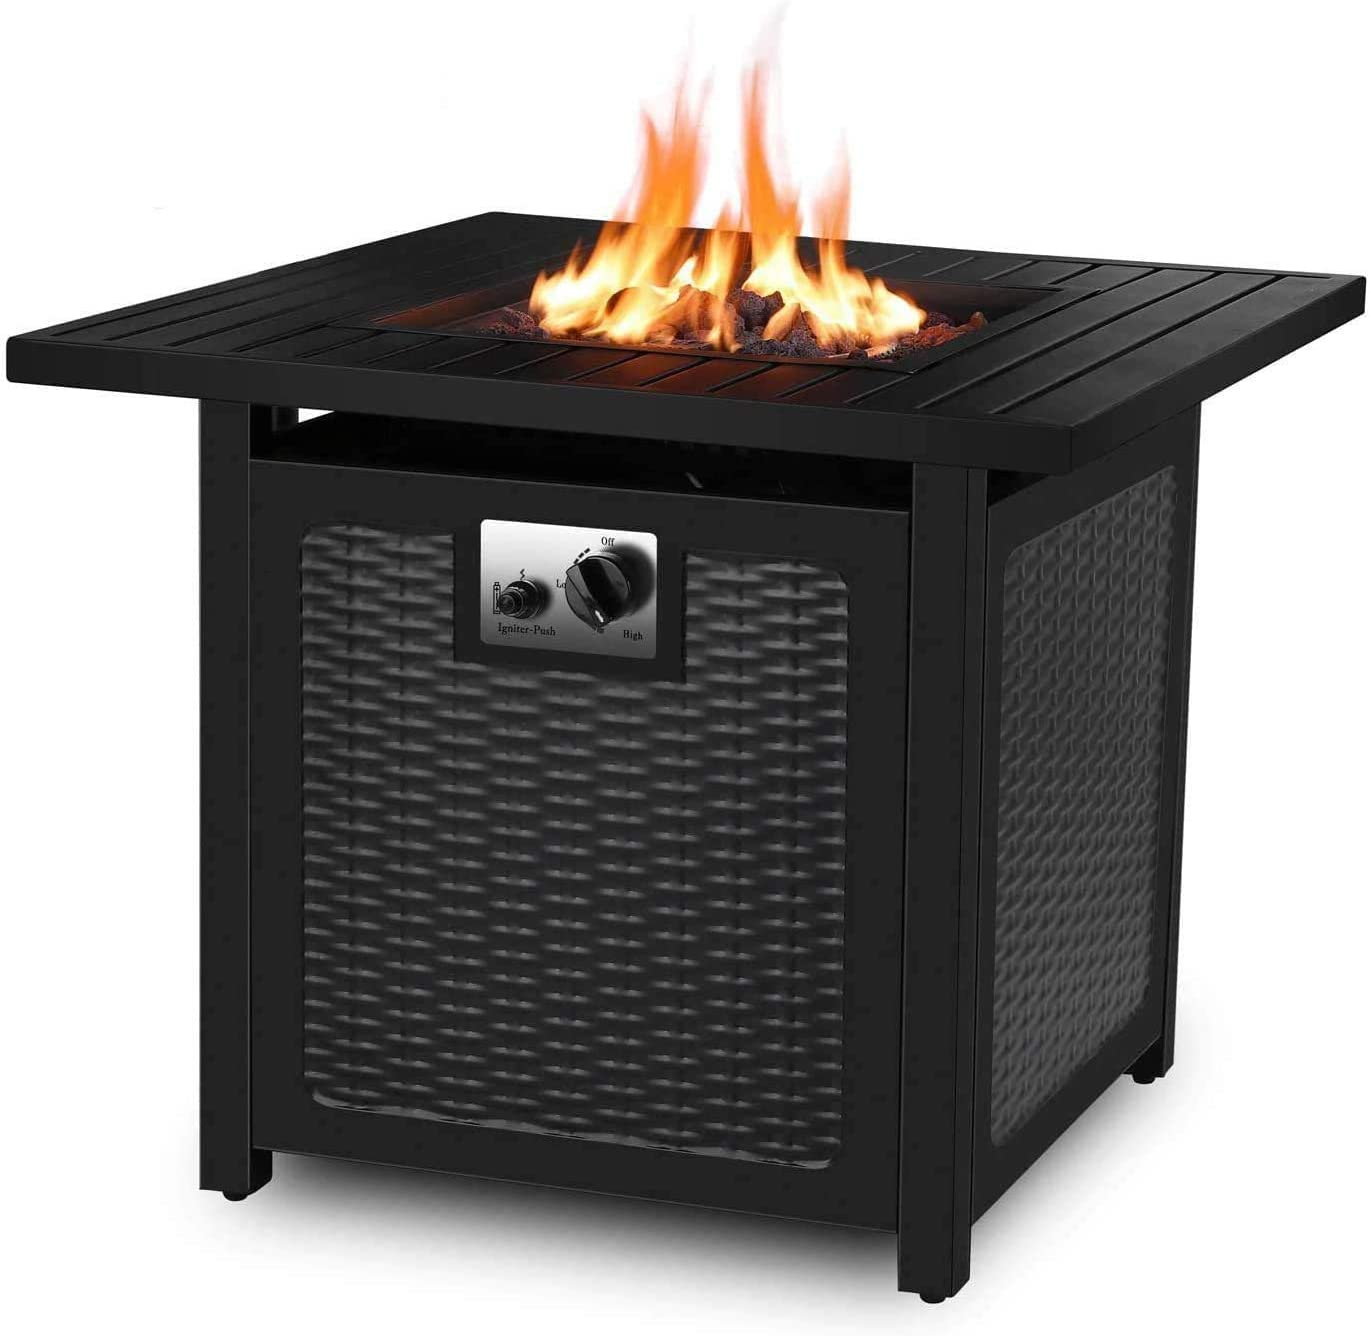 Amazon Com Femor 30 Propane Gas Fire Pit 50 000 Btu Auto Ignition Fire Bowl With Waterproof Firepit Table Cover Lava Rock Csa Certification Outdoor Square Fireplace For Courtyard Balcony Black Garden Outdoor